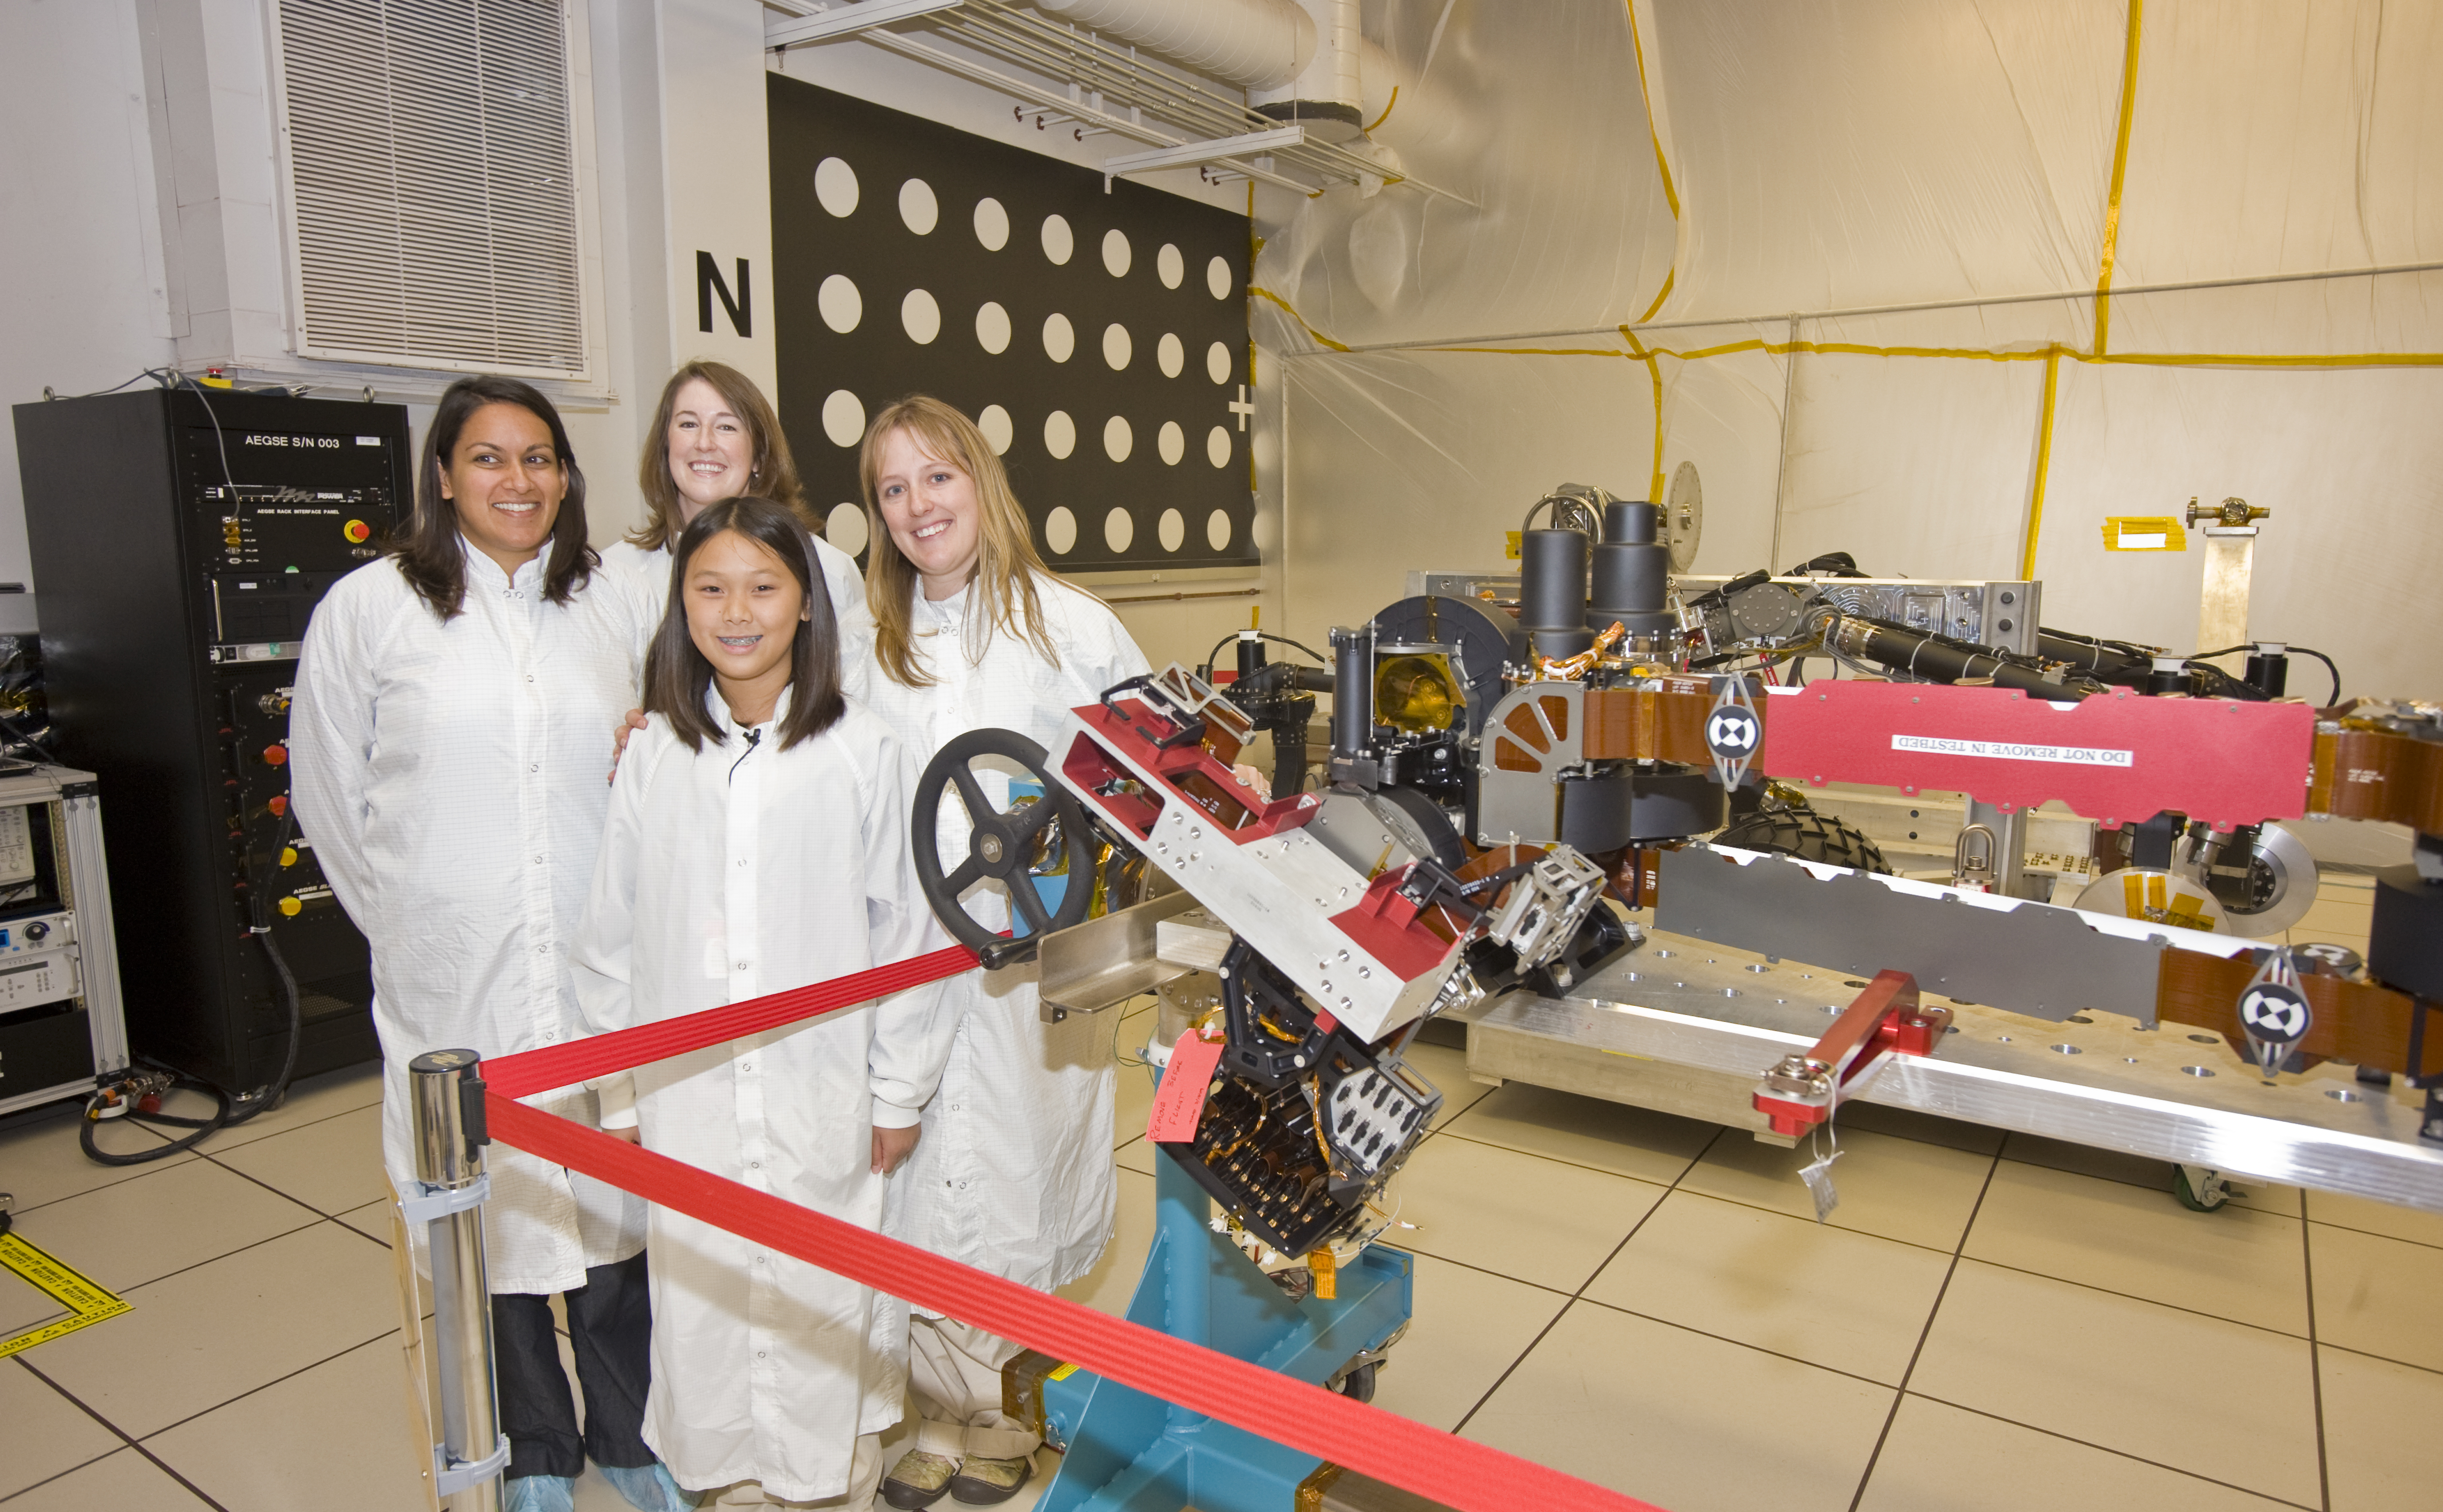 Clara Ma (in front) with Suparna Mukherjee, Julie Townsend, Jaime Waydo (in back row) are featured here in the laboratory where an engineering model of the next Mars rover, Curiosity, is being tested.